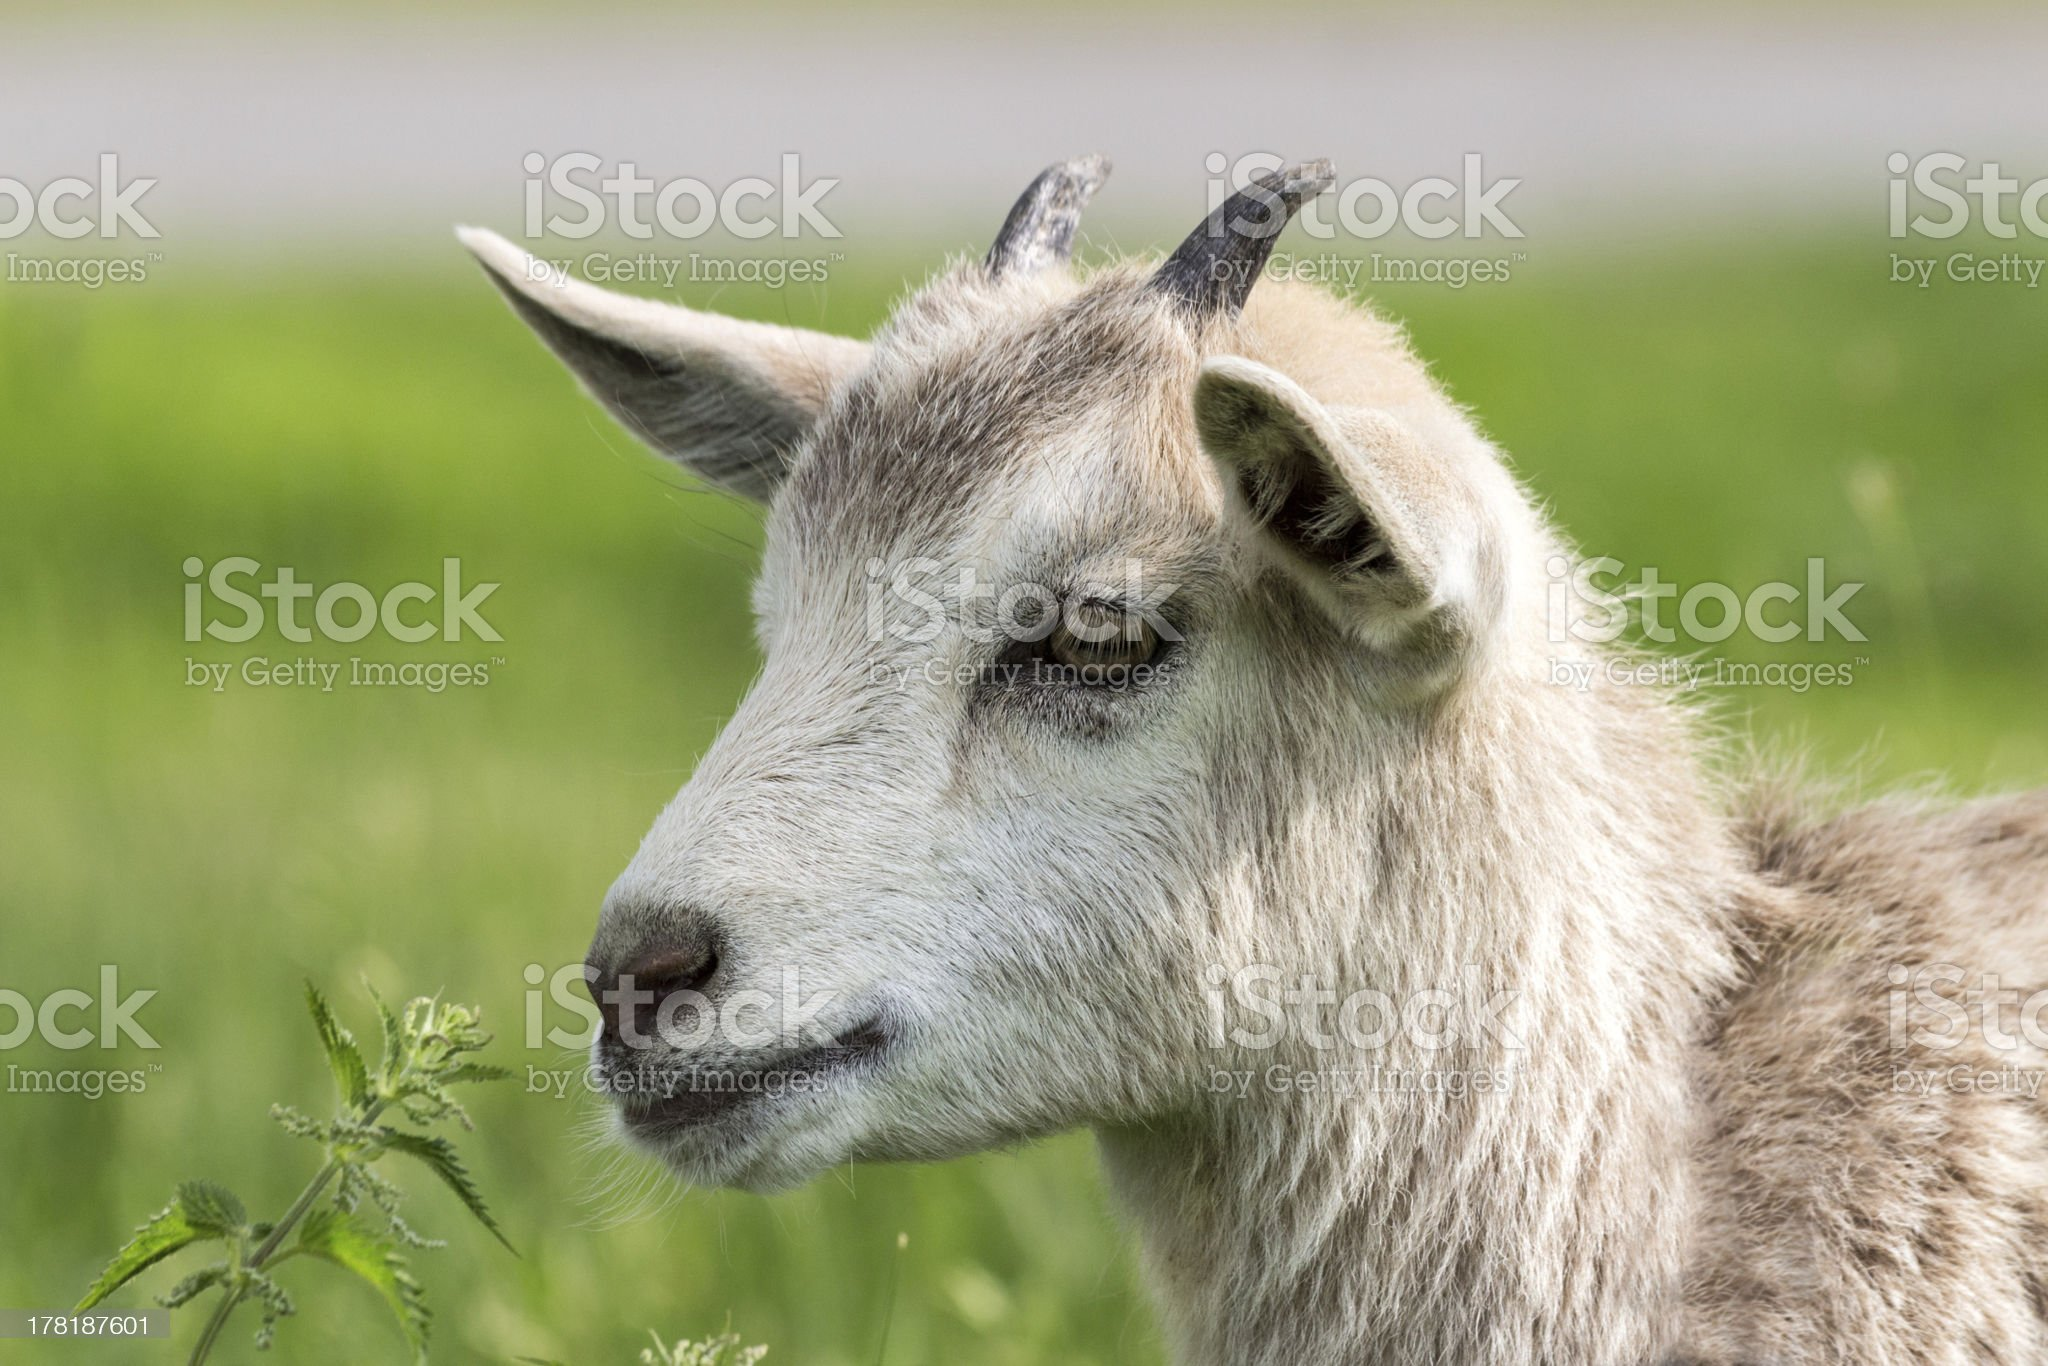 Thoughtful look royalty-free stock photo